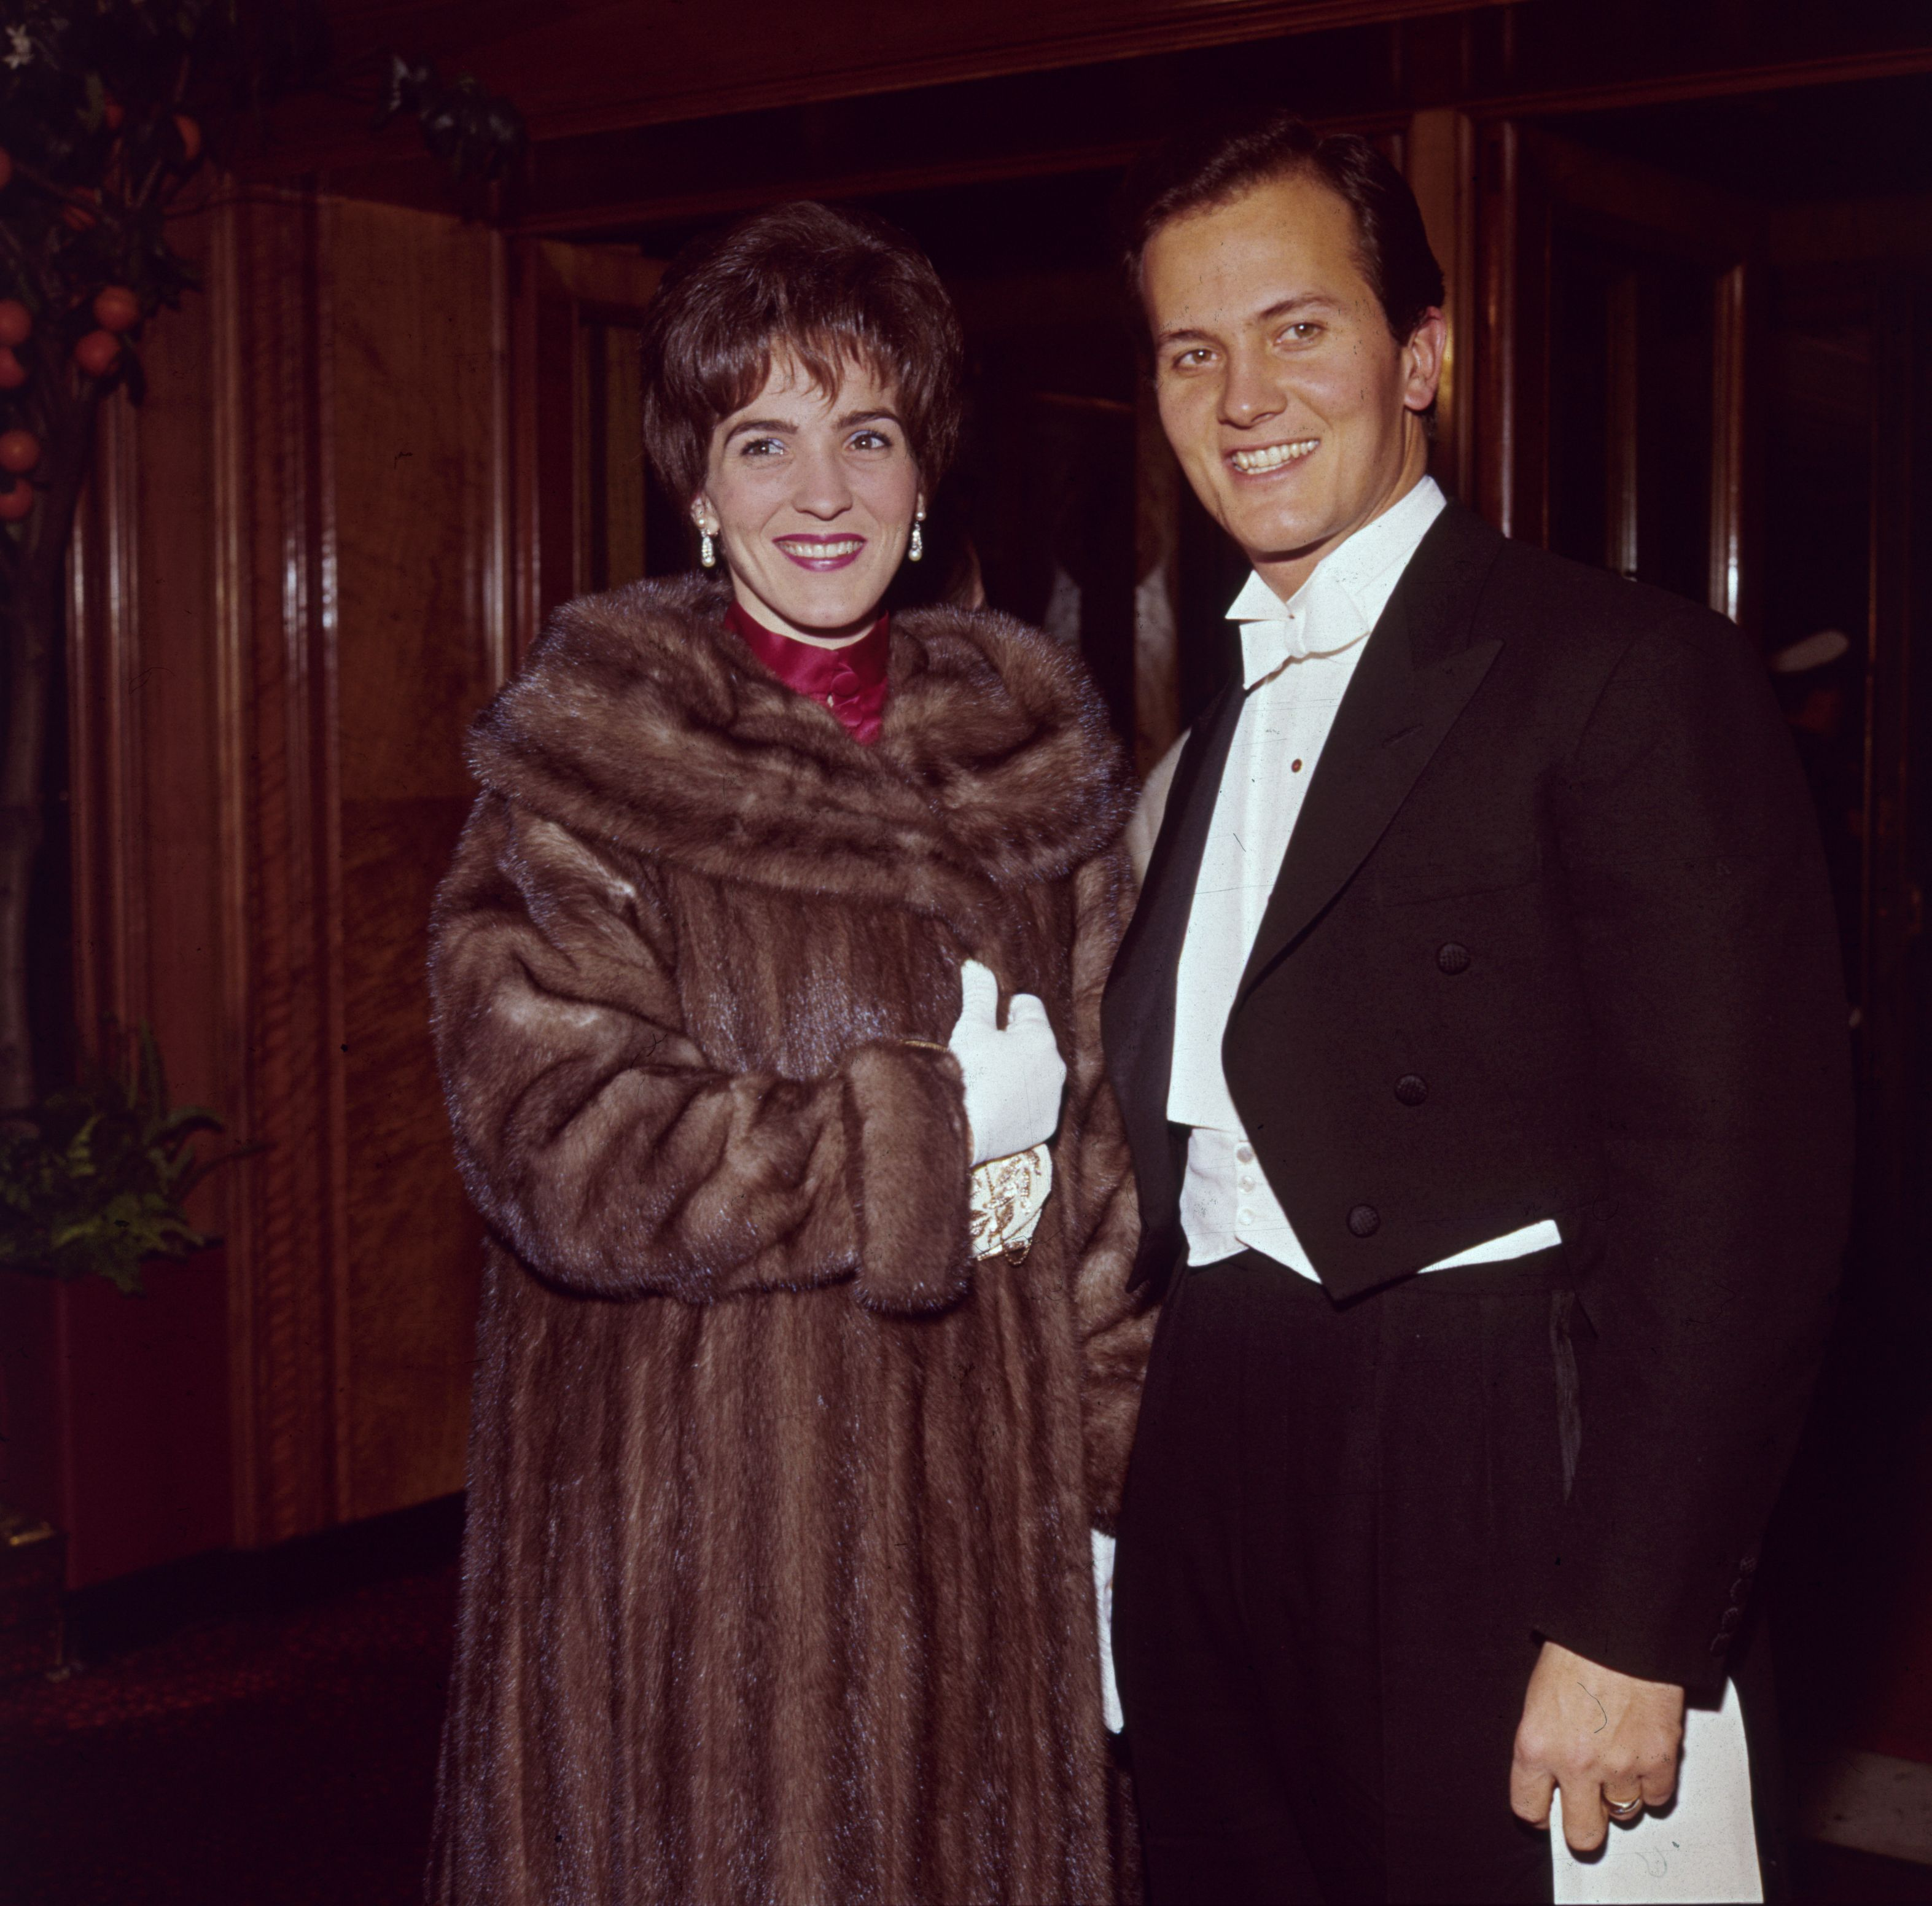 Pat Boone with his wife Shirley Foley Boone in 1962 | Source: Getty Images